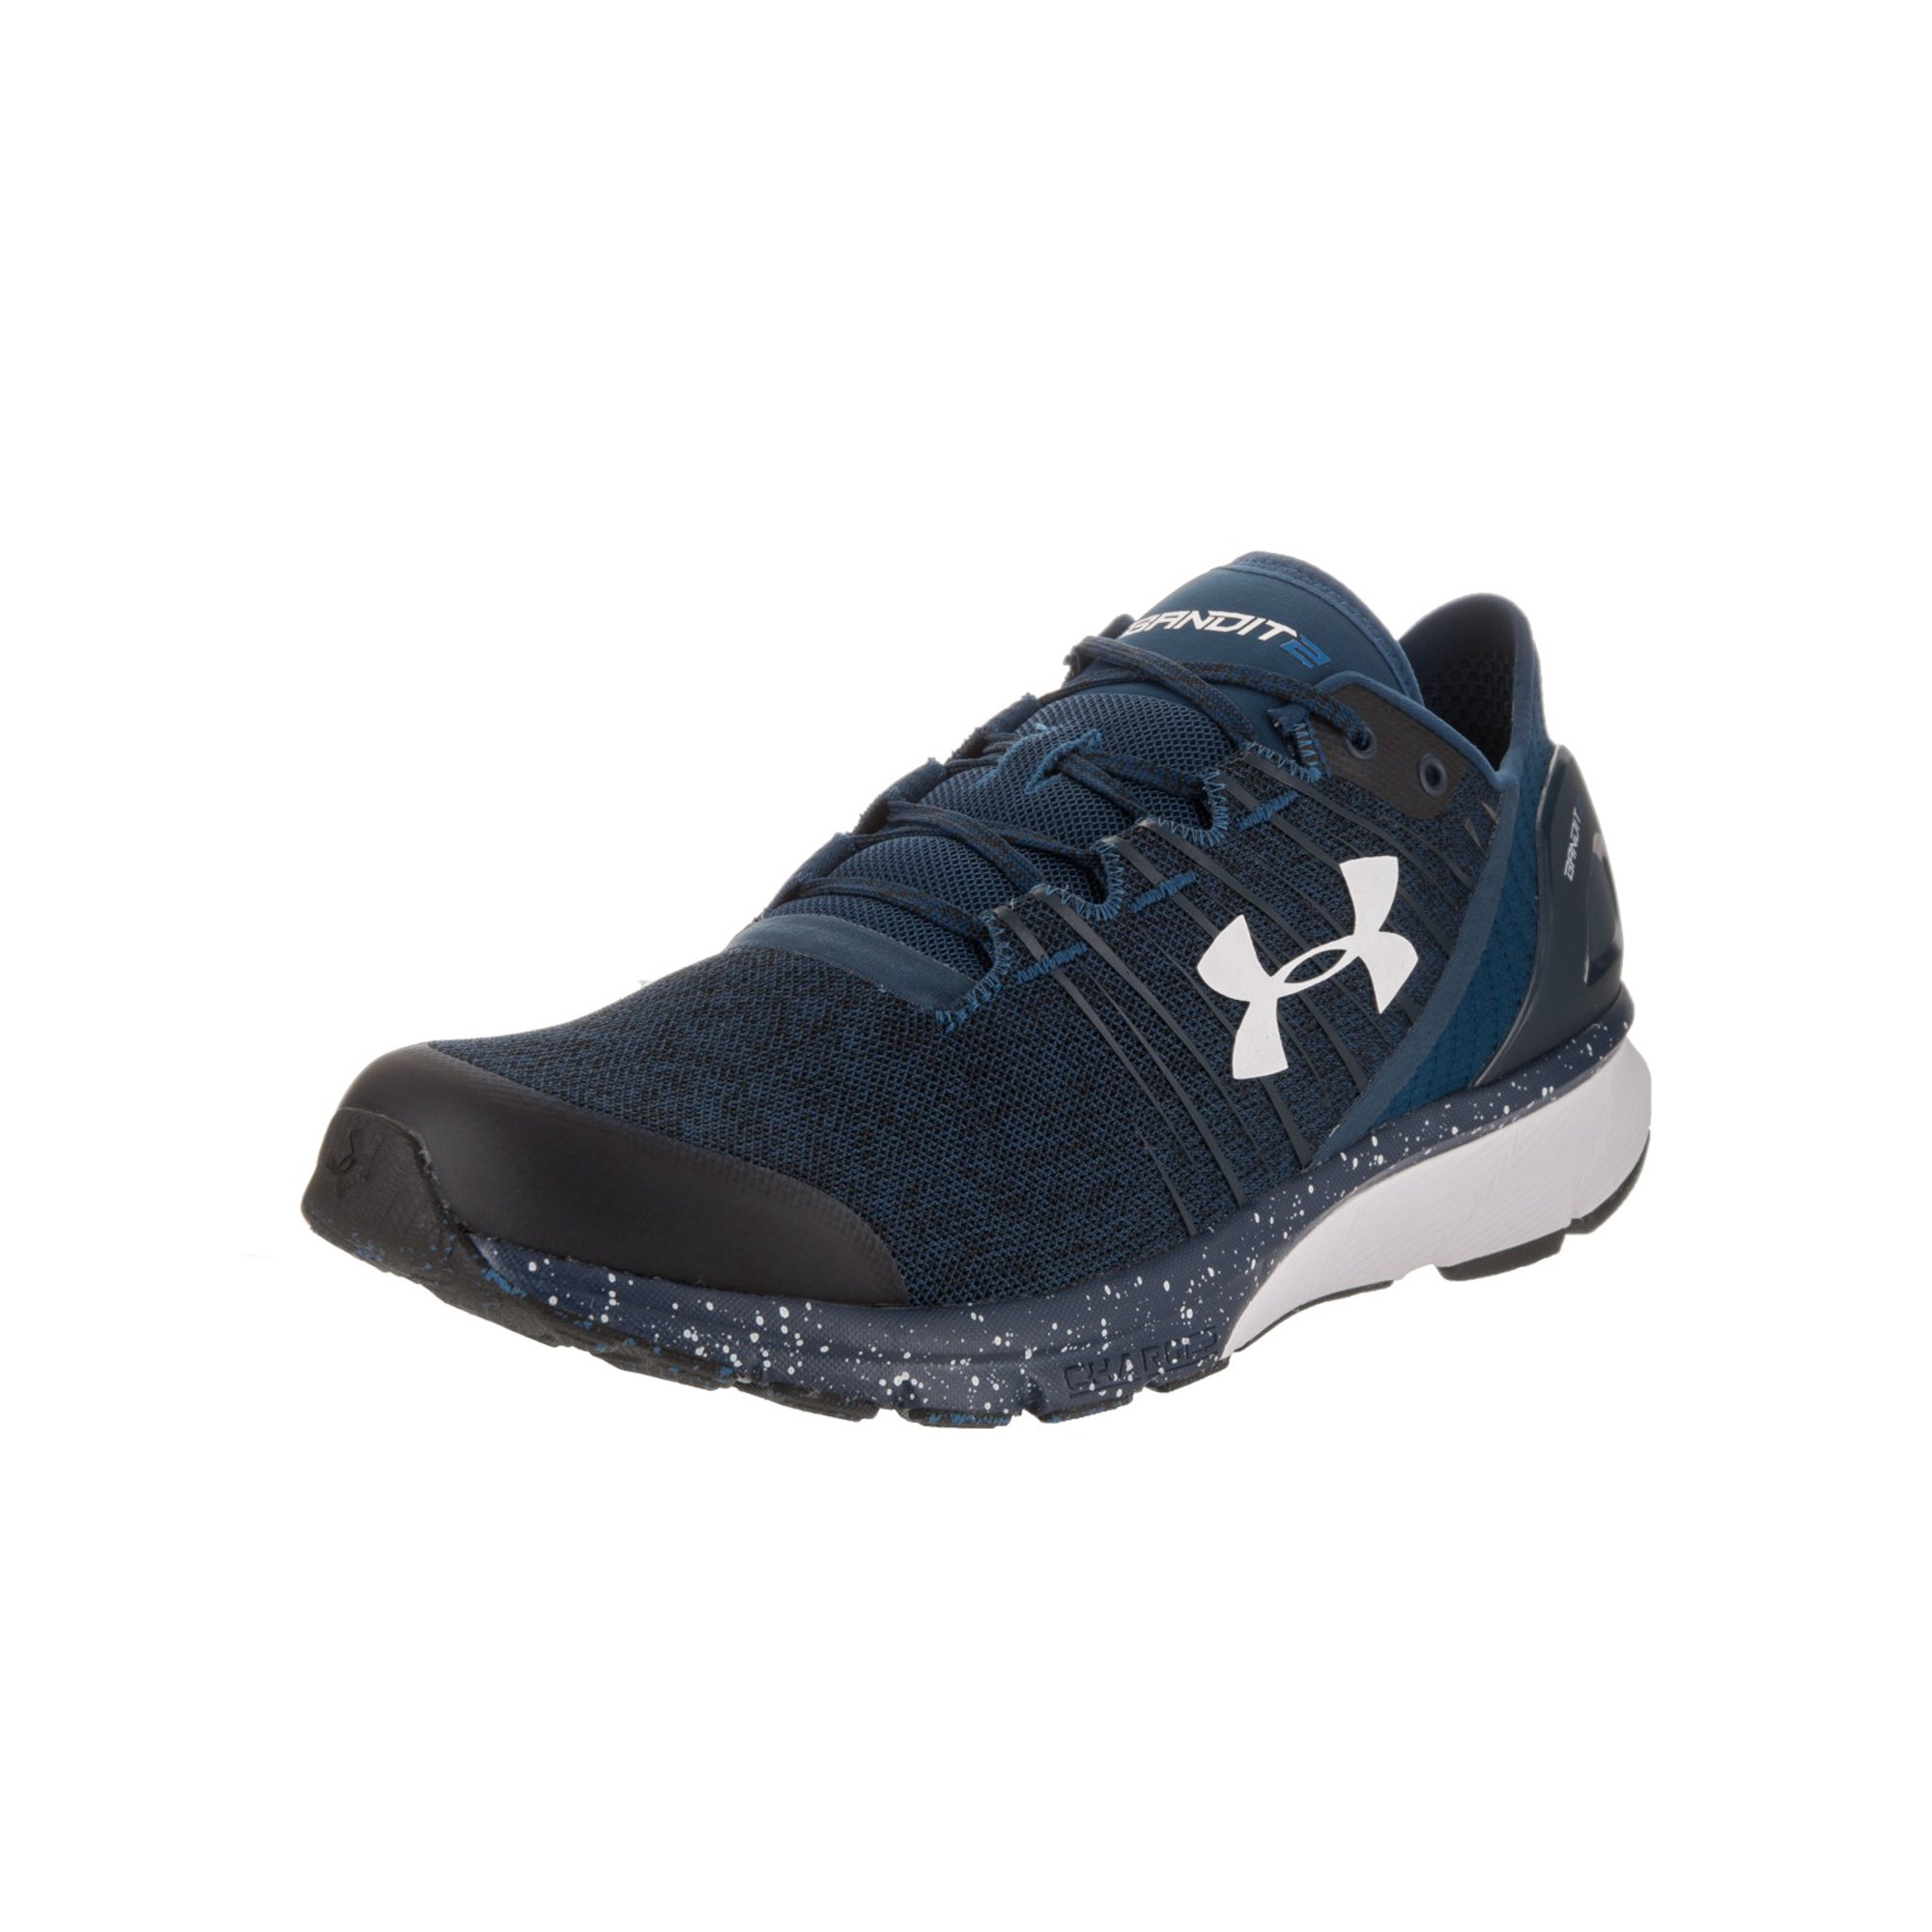 best loved 105a1 e5ae6 Under Armour Men's Charged Bandit 2 Running Shoe | Walmart ...